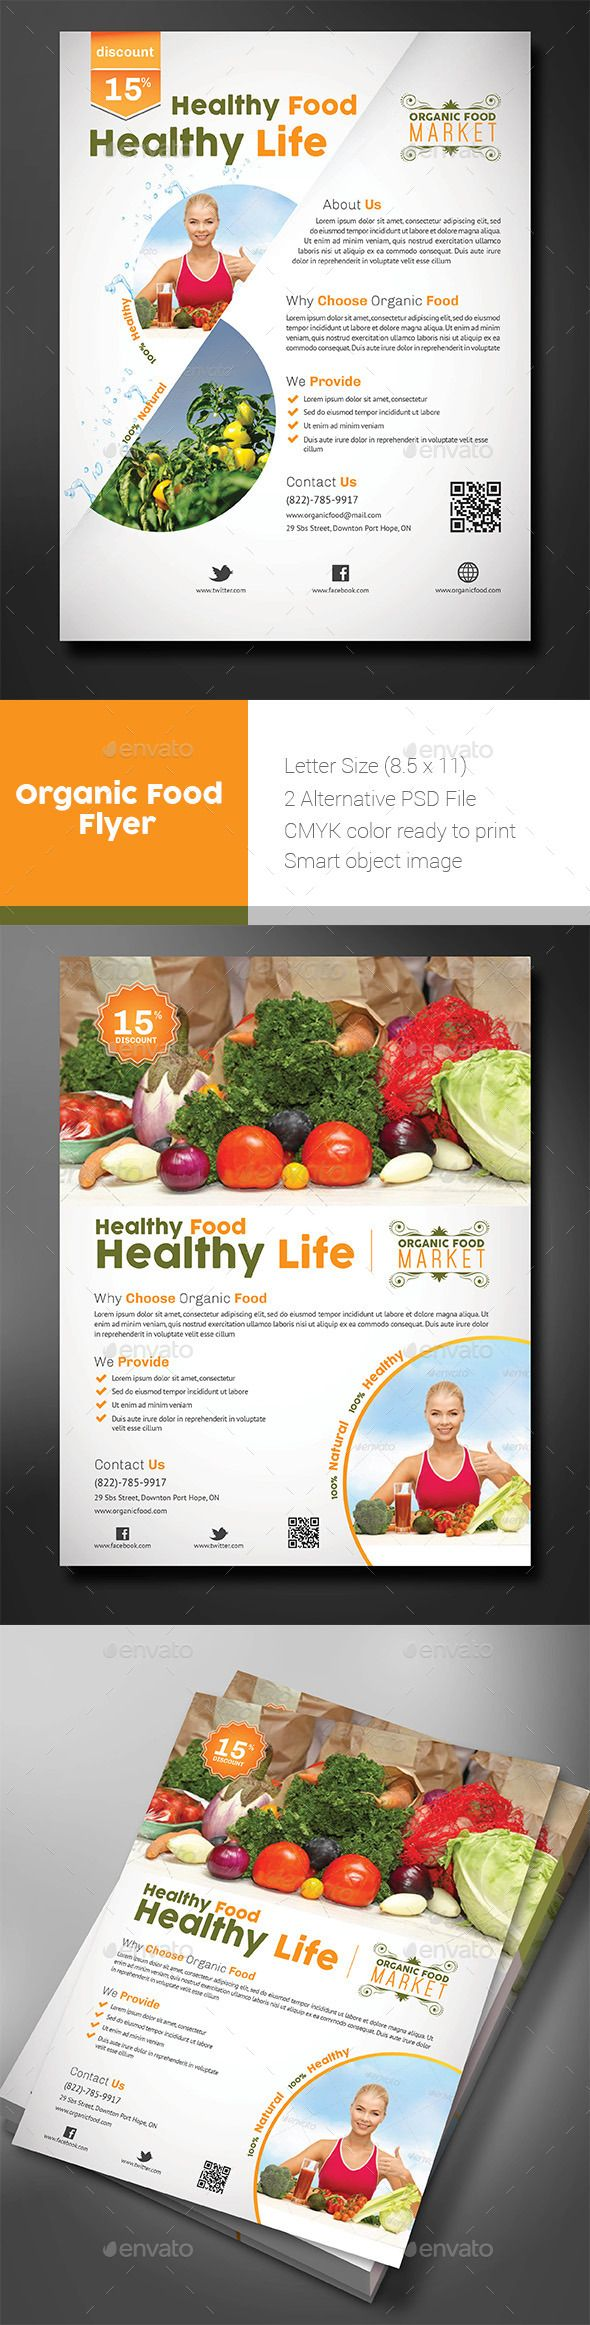 D health food store in l a - Best 25 Organic Food Stores Ideas On Pinterest Organic Lifestyle What Are Organic Foods And Good To Know Meaning